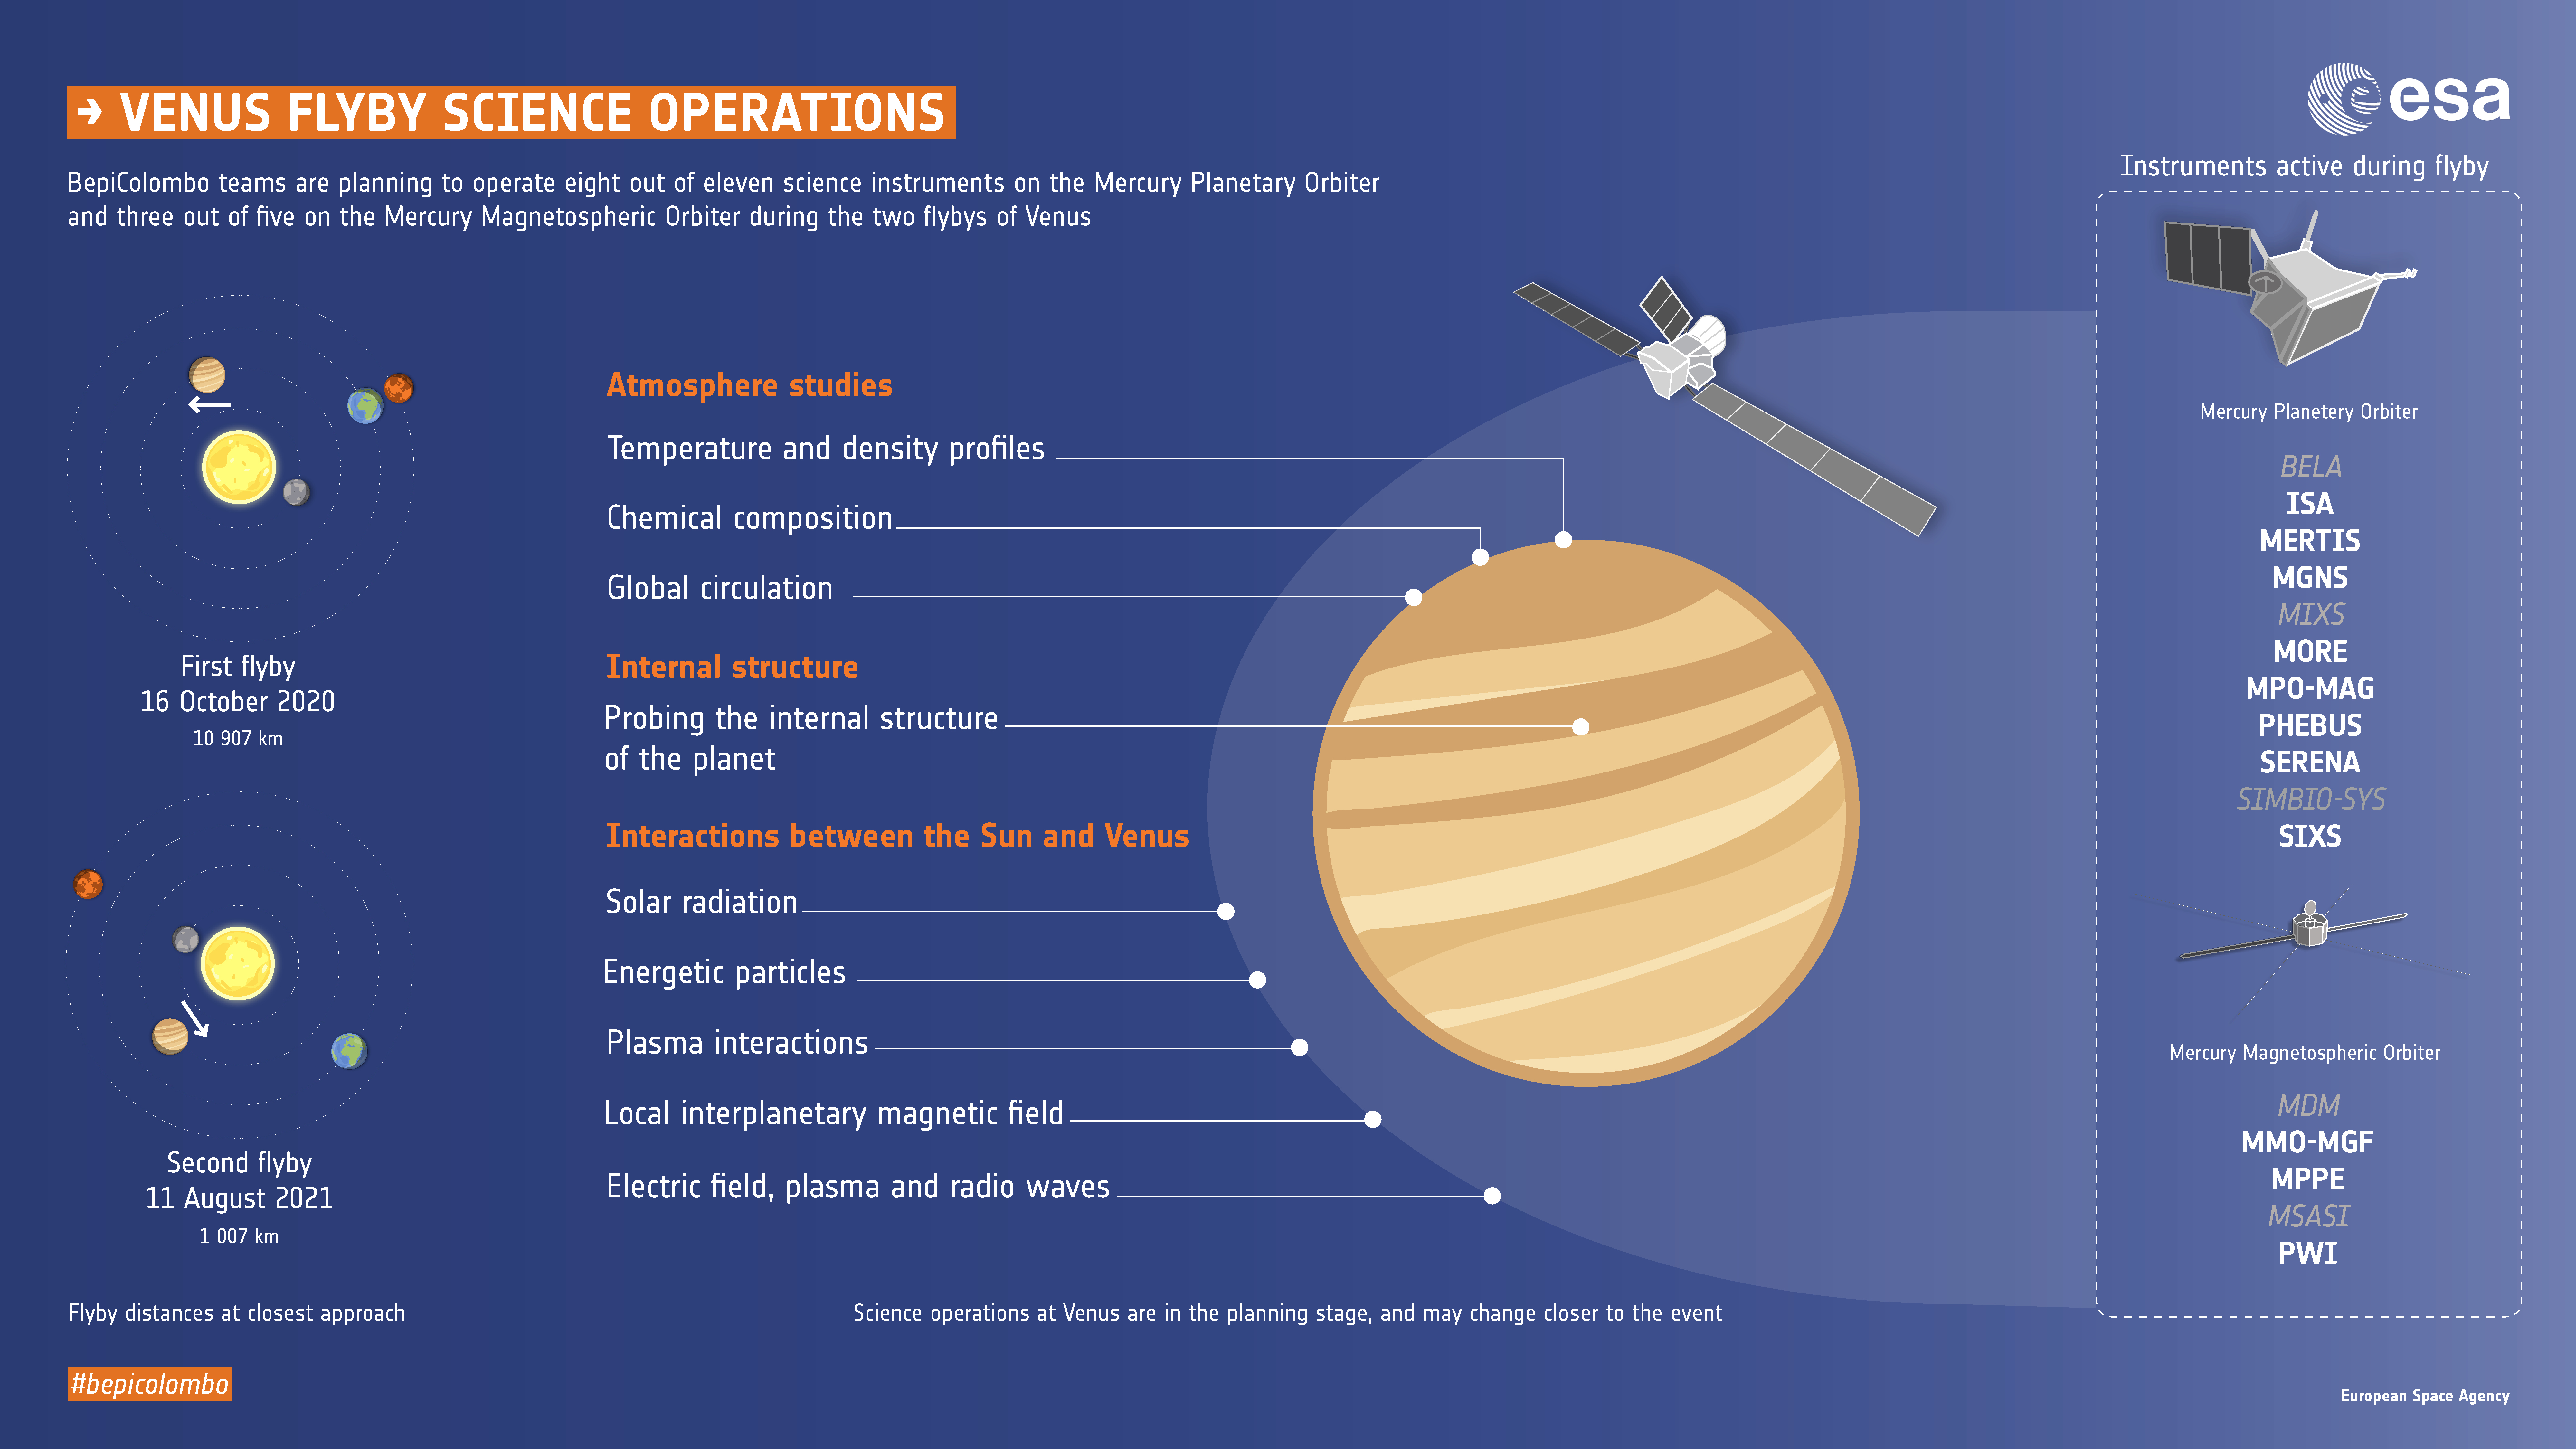 The orbiters will be able to operate or partially operate some of their instruments during the cruise phase, affording unique opportunities to collect scientifically valuable data at Venus, for example. Moreover, some of the instruments designed to study Mercury in a particular way, can be used in a completely different way at Venus – the main difference being that Venus has a thick atmosphere while Mercury does not.